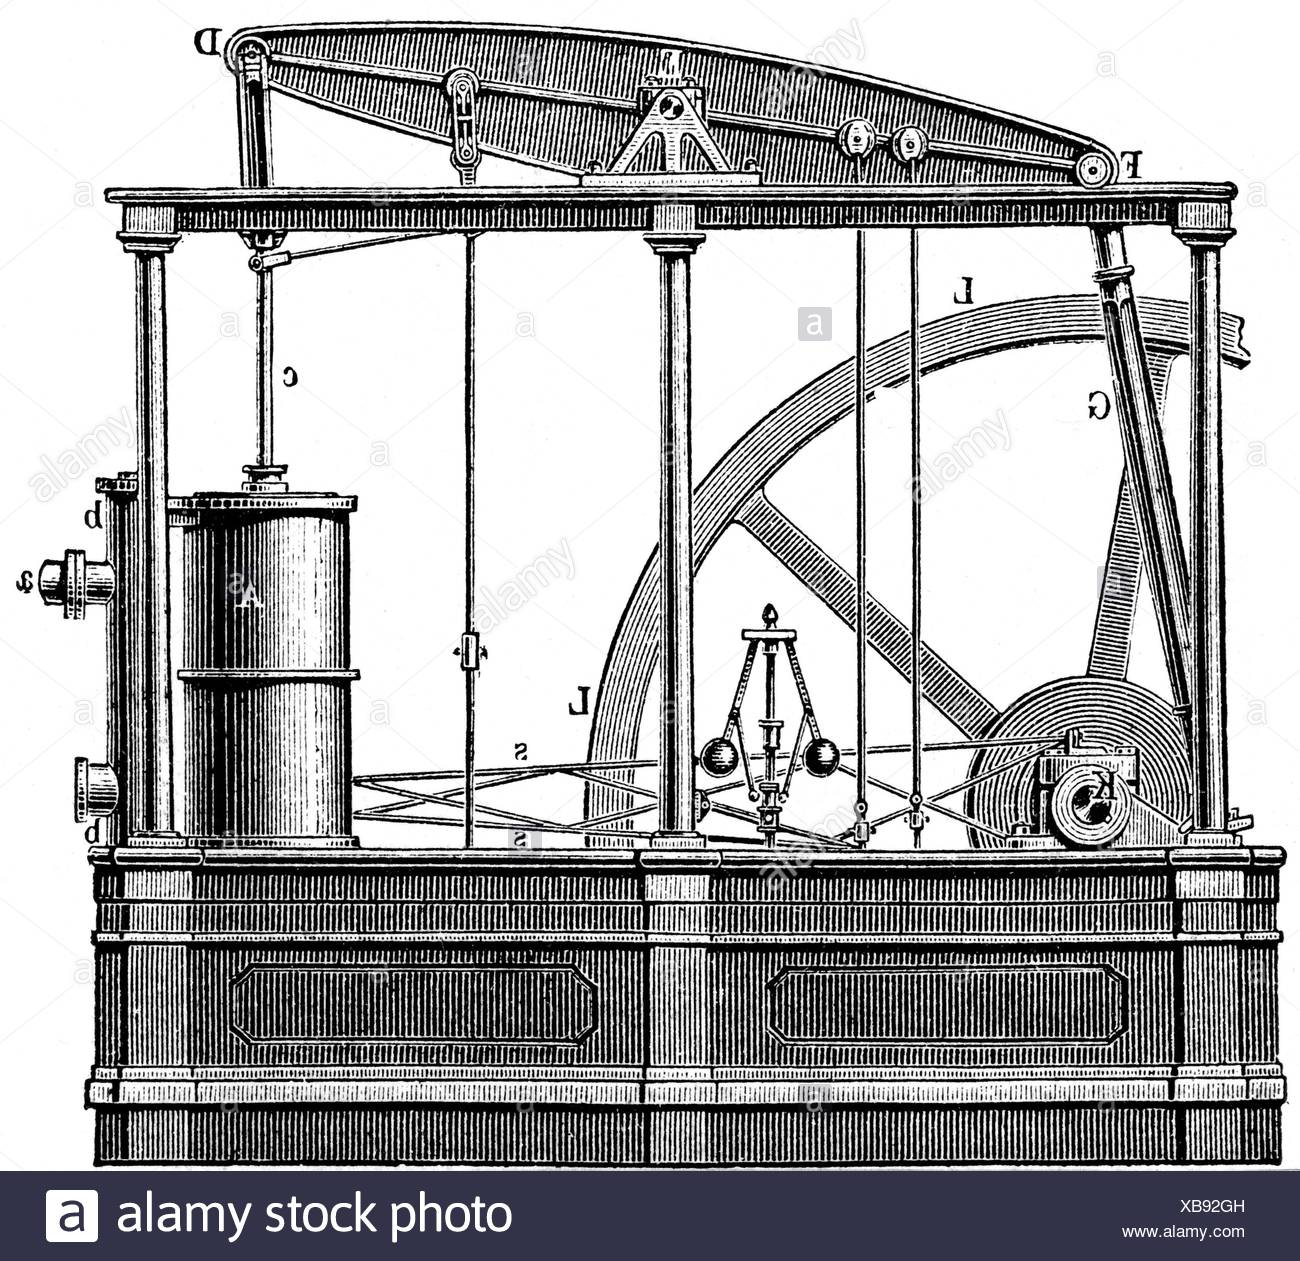 James Watt Steam Engine How It Works Bolier Ketel Uap Stock Photos